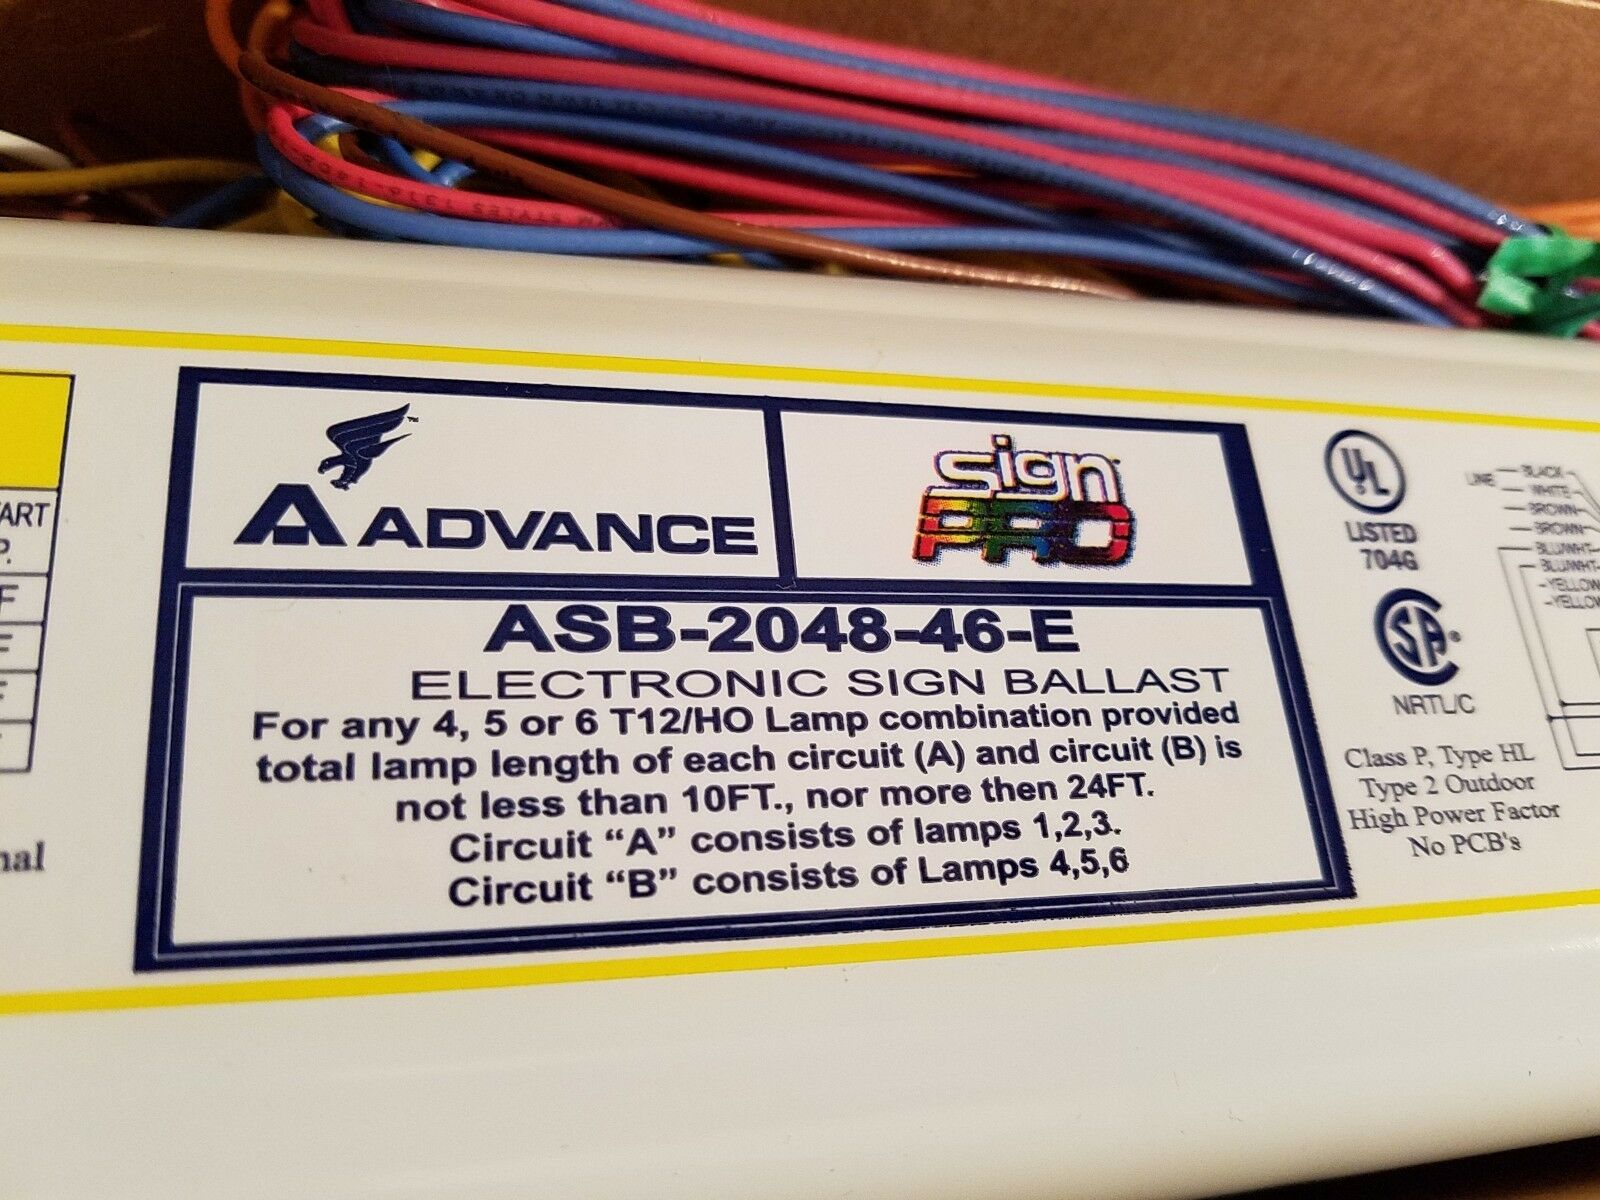 Asb-2048-46-e Advance Sign Ballast Same as Esb848-46 Damar 06246 on